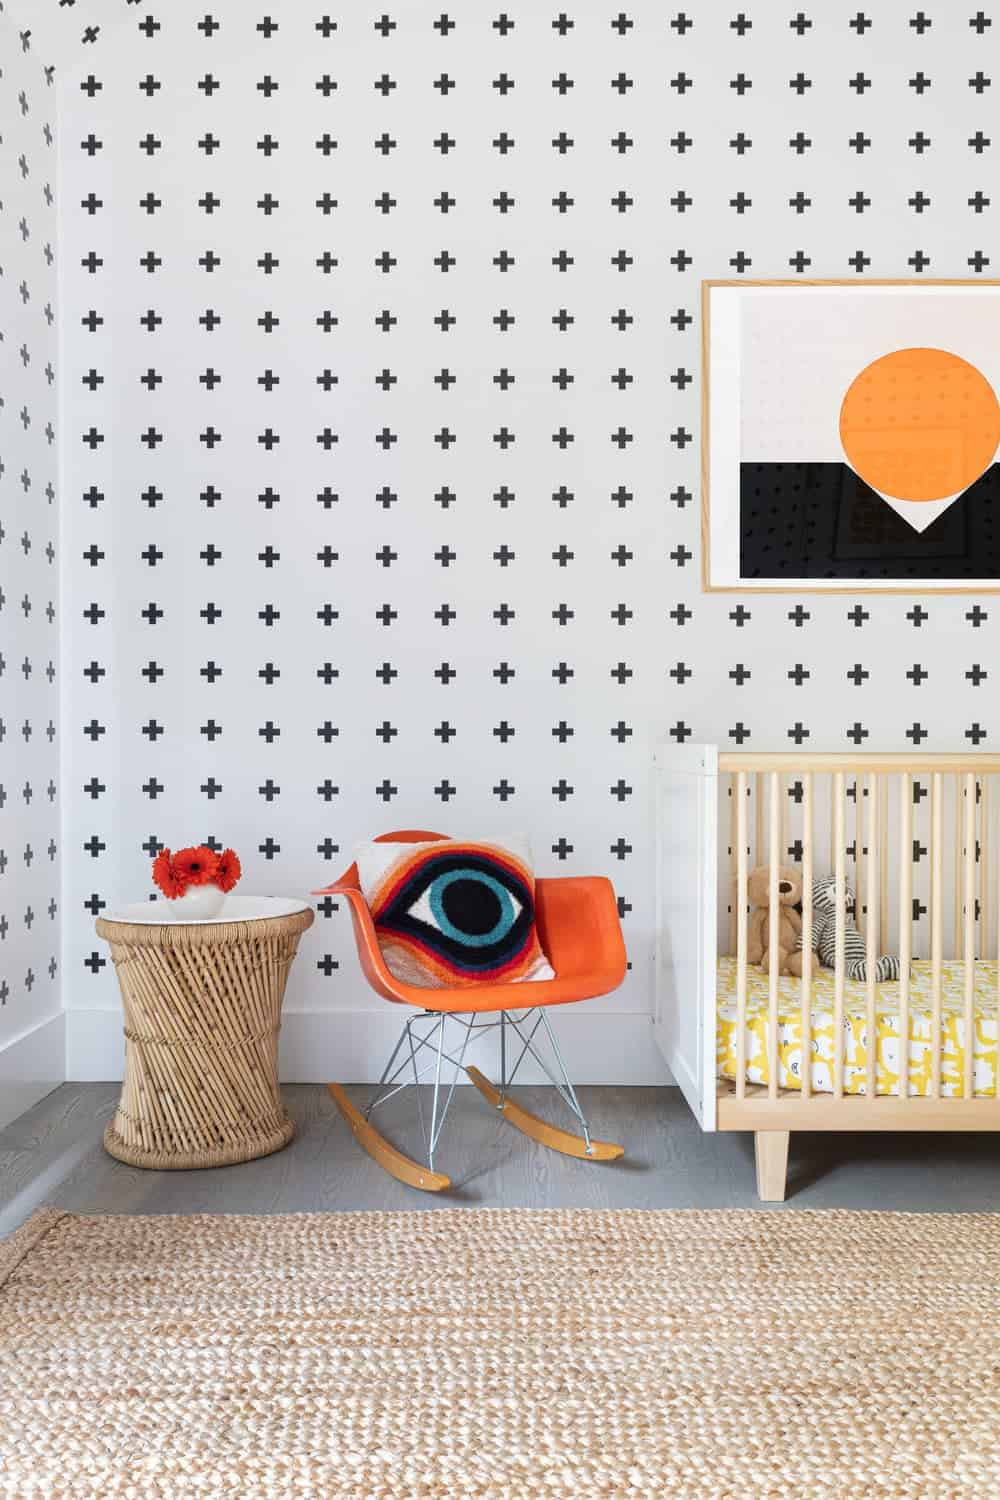 This nursery room features stylish wall design and a large area rug covering the gray hardwood flooring.